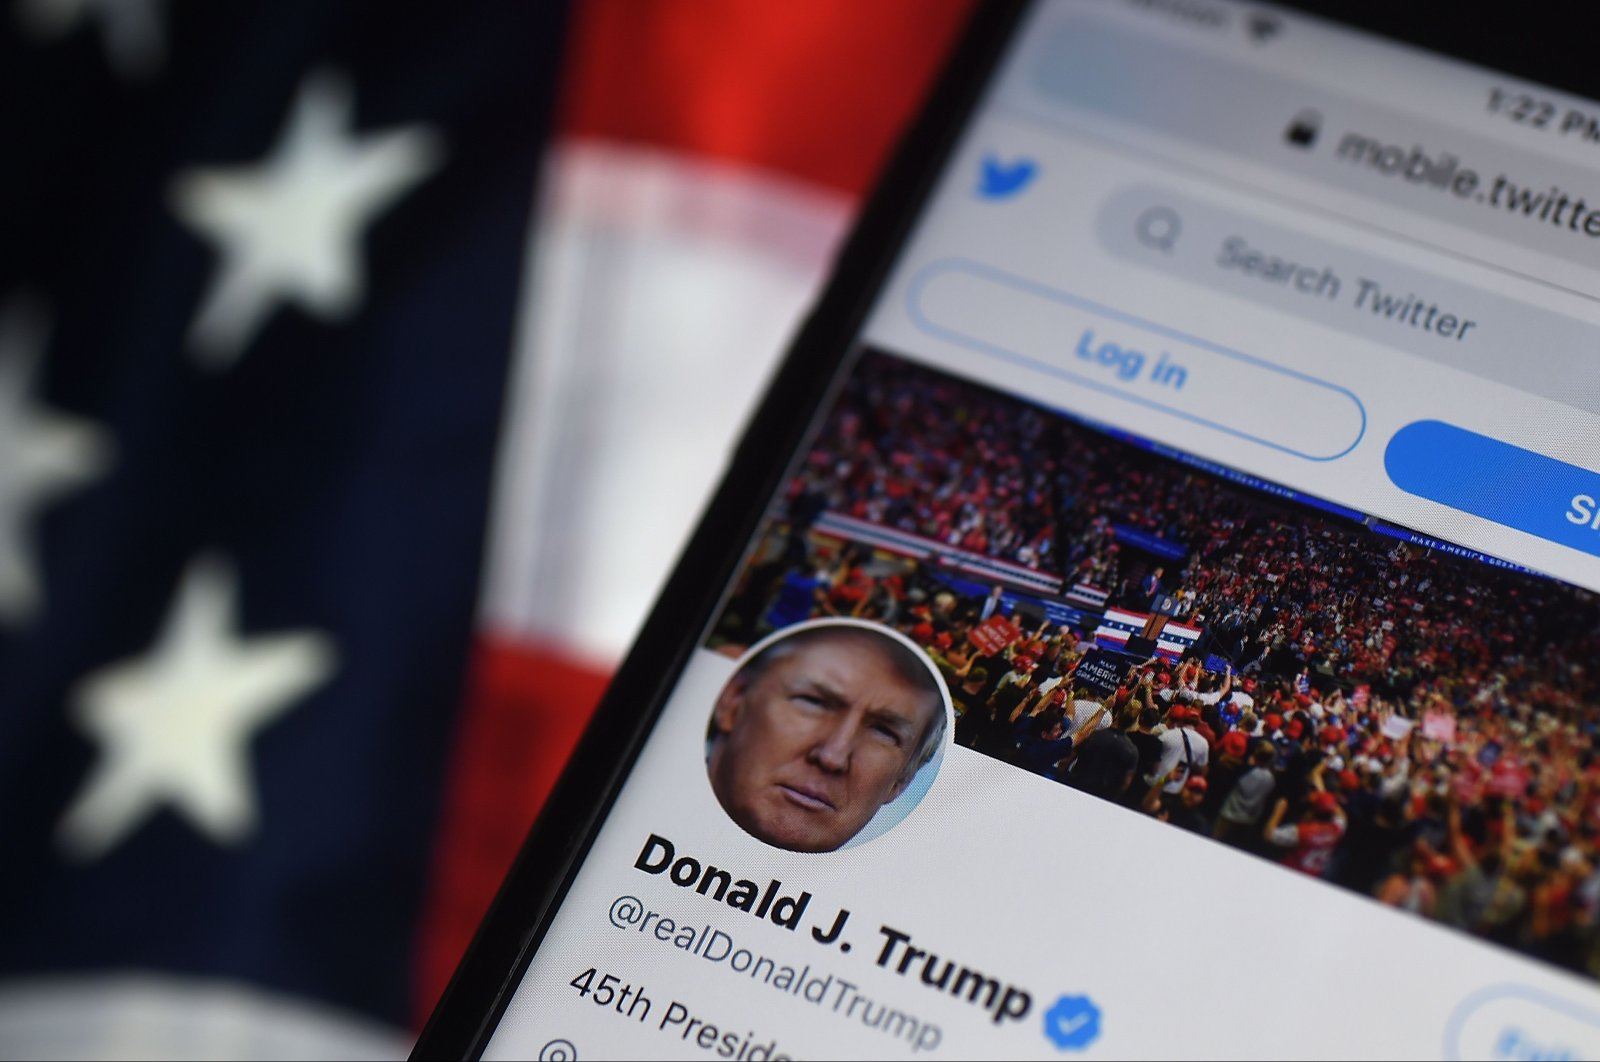 In this photo illustration, the Twitter account of U.S. President Donald Trump is displayed on a mobile phone in Arlington, Virginia, Aug. 10, 2020. (AFP Photo)